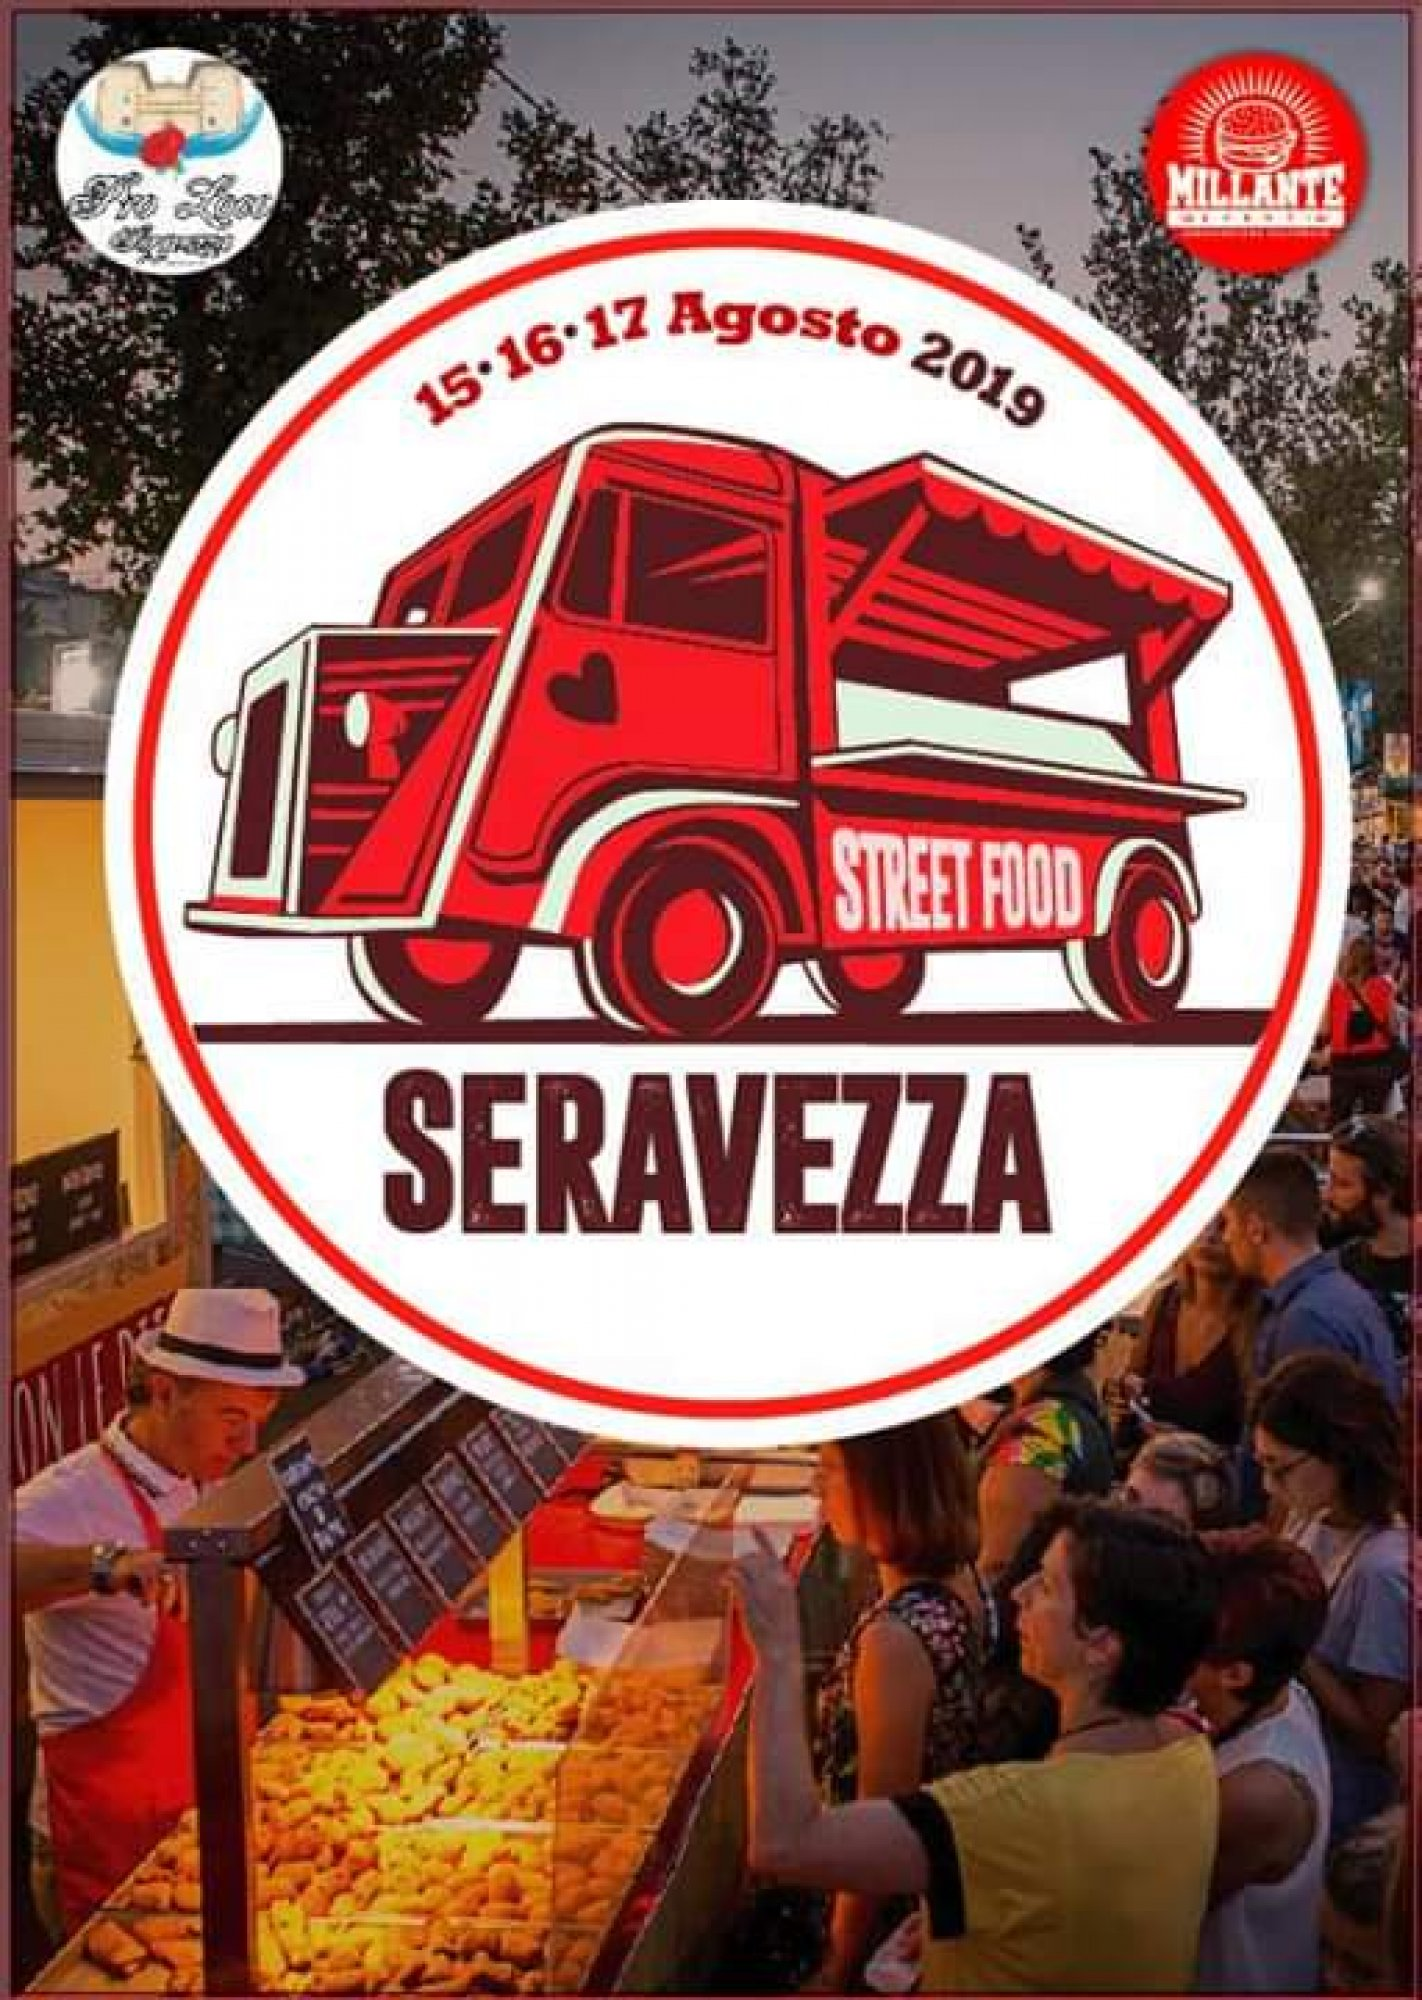 Street Food Seravezza